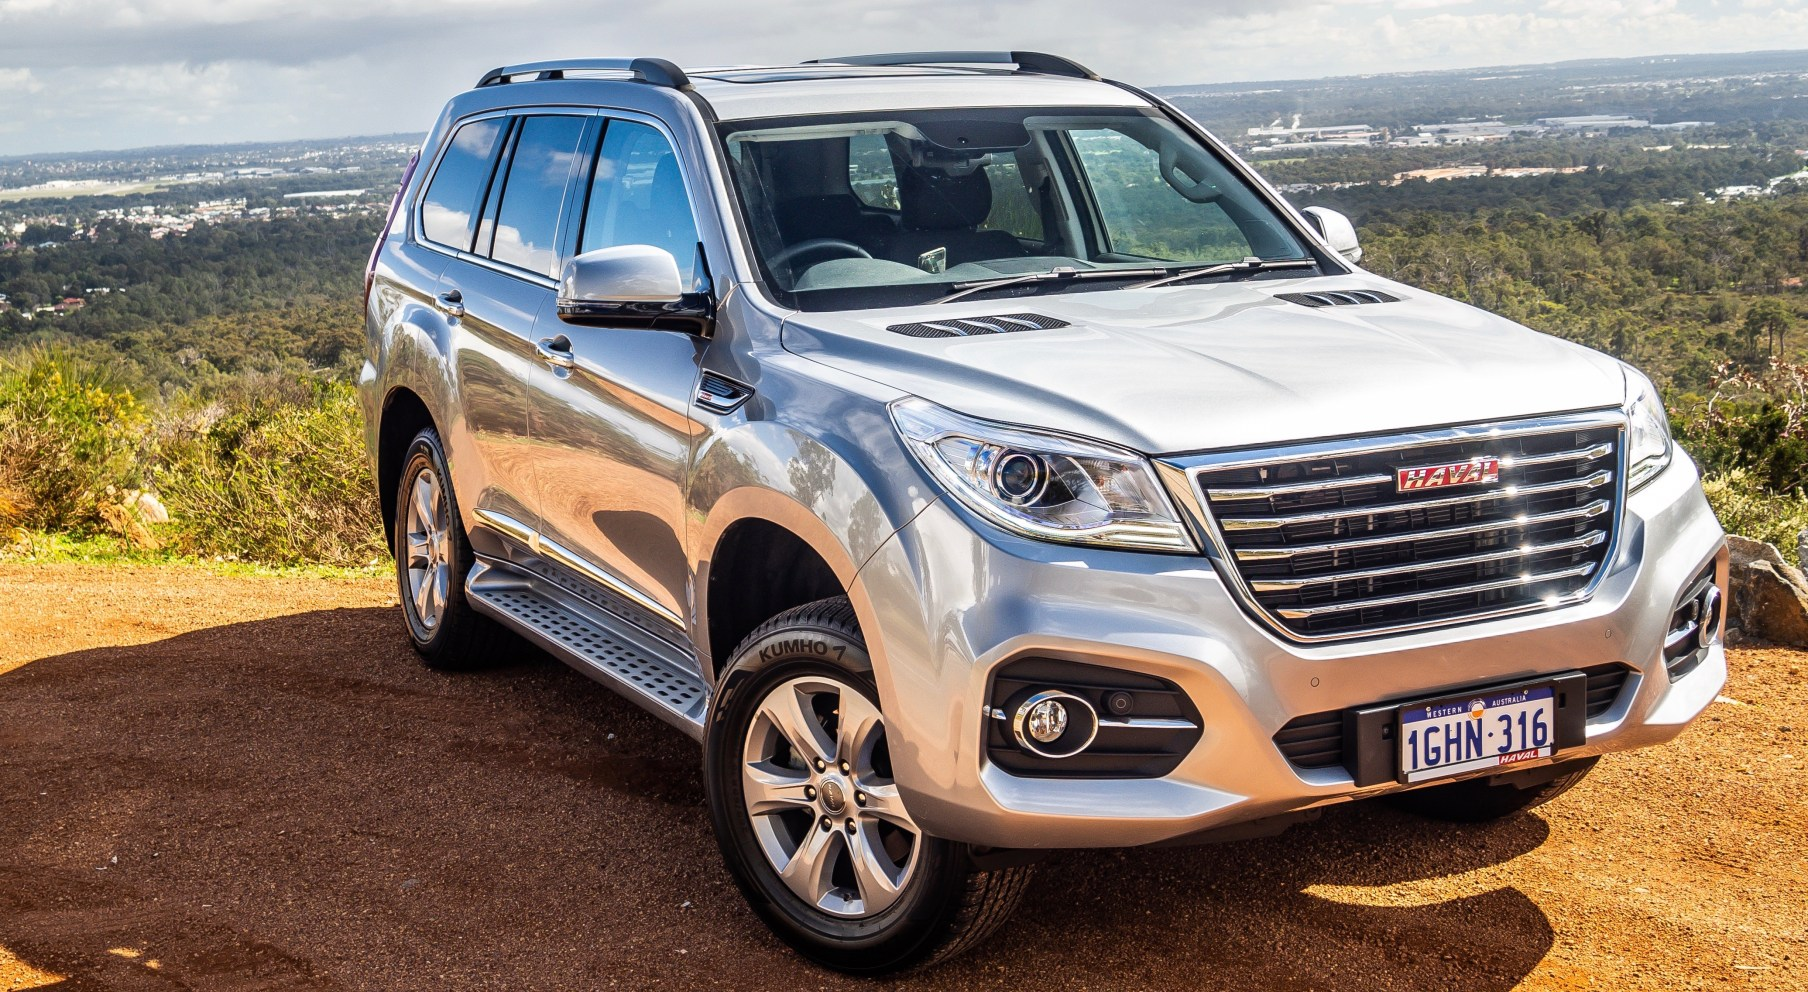 Haval H9 SUV for sale in Perth